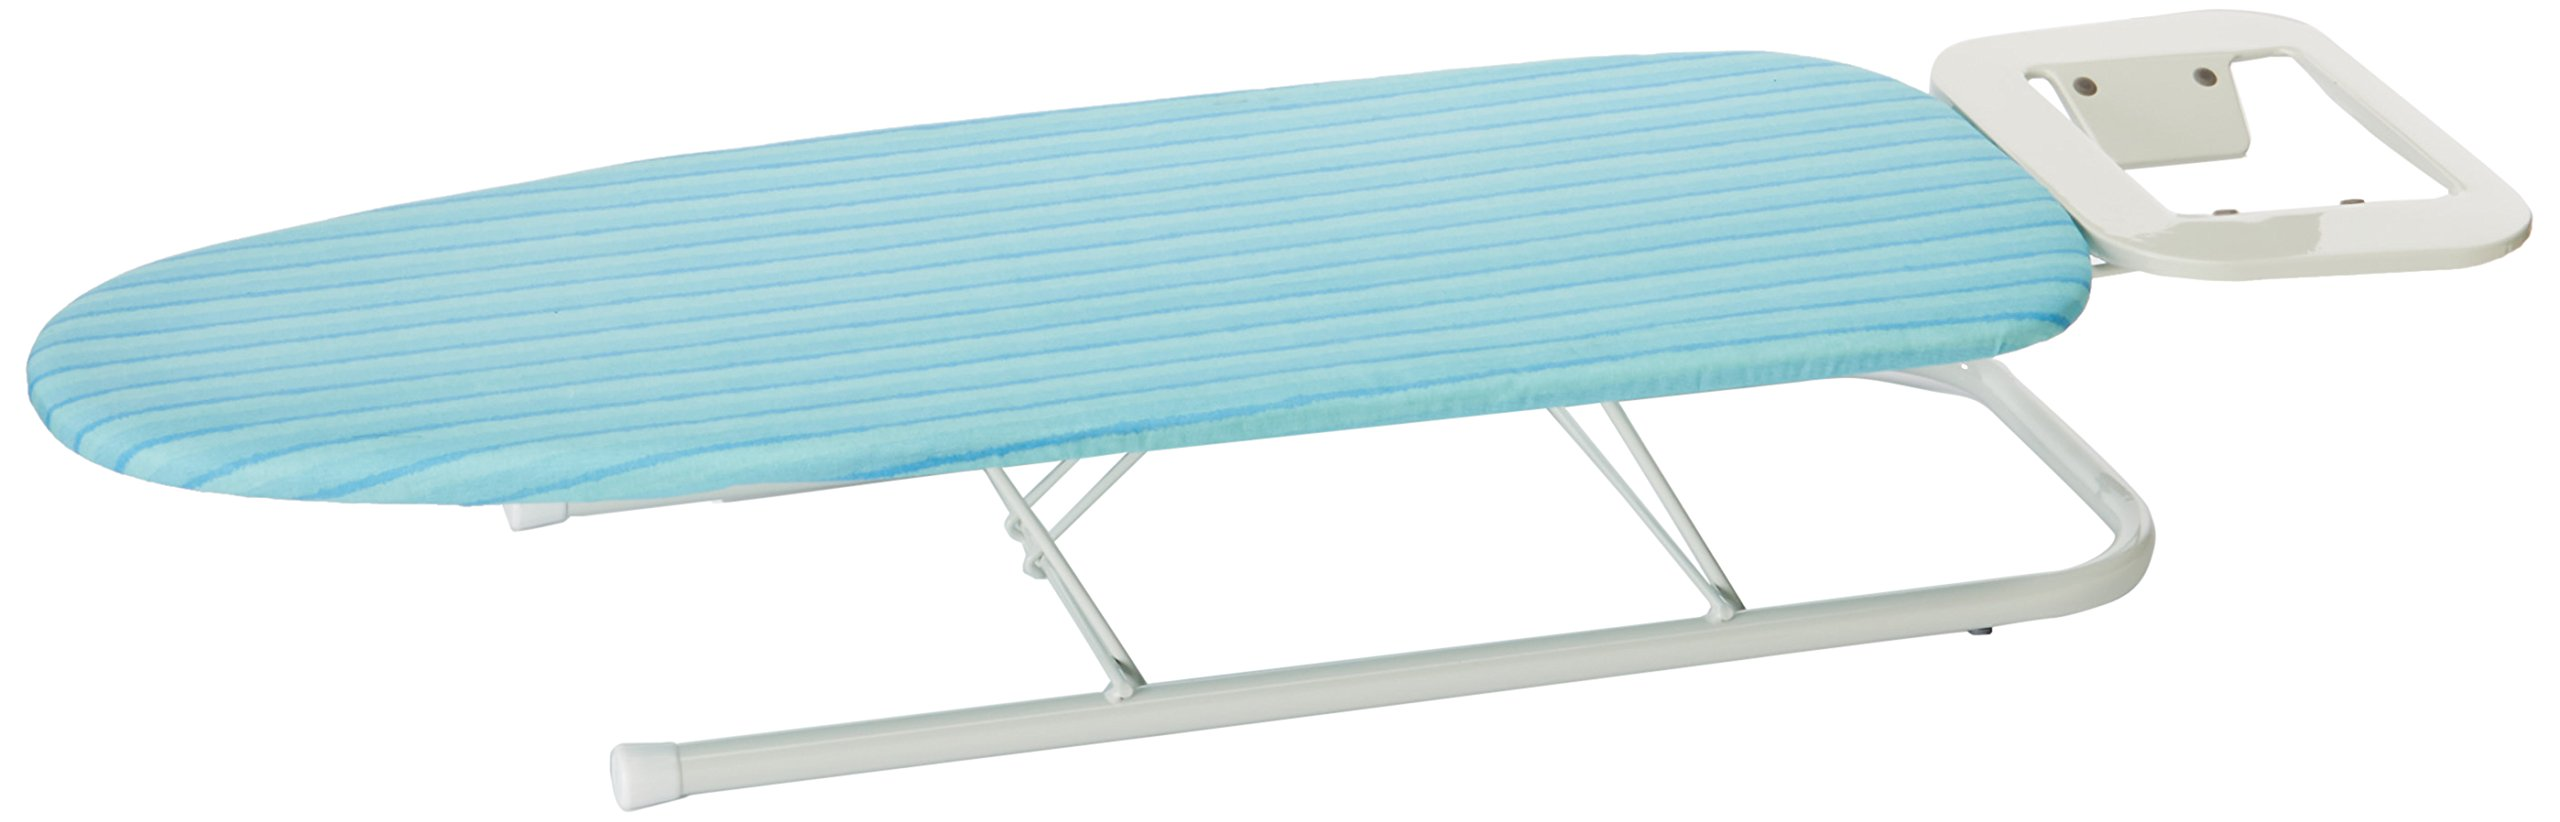 Honey-Can-Do BRD-01294 Deluxe Tabletop Ironing Board with Iron Rest